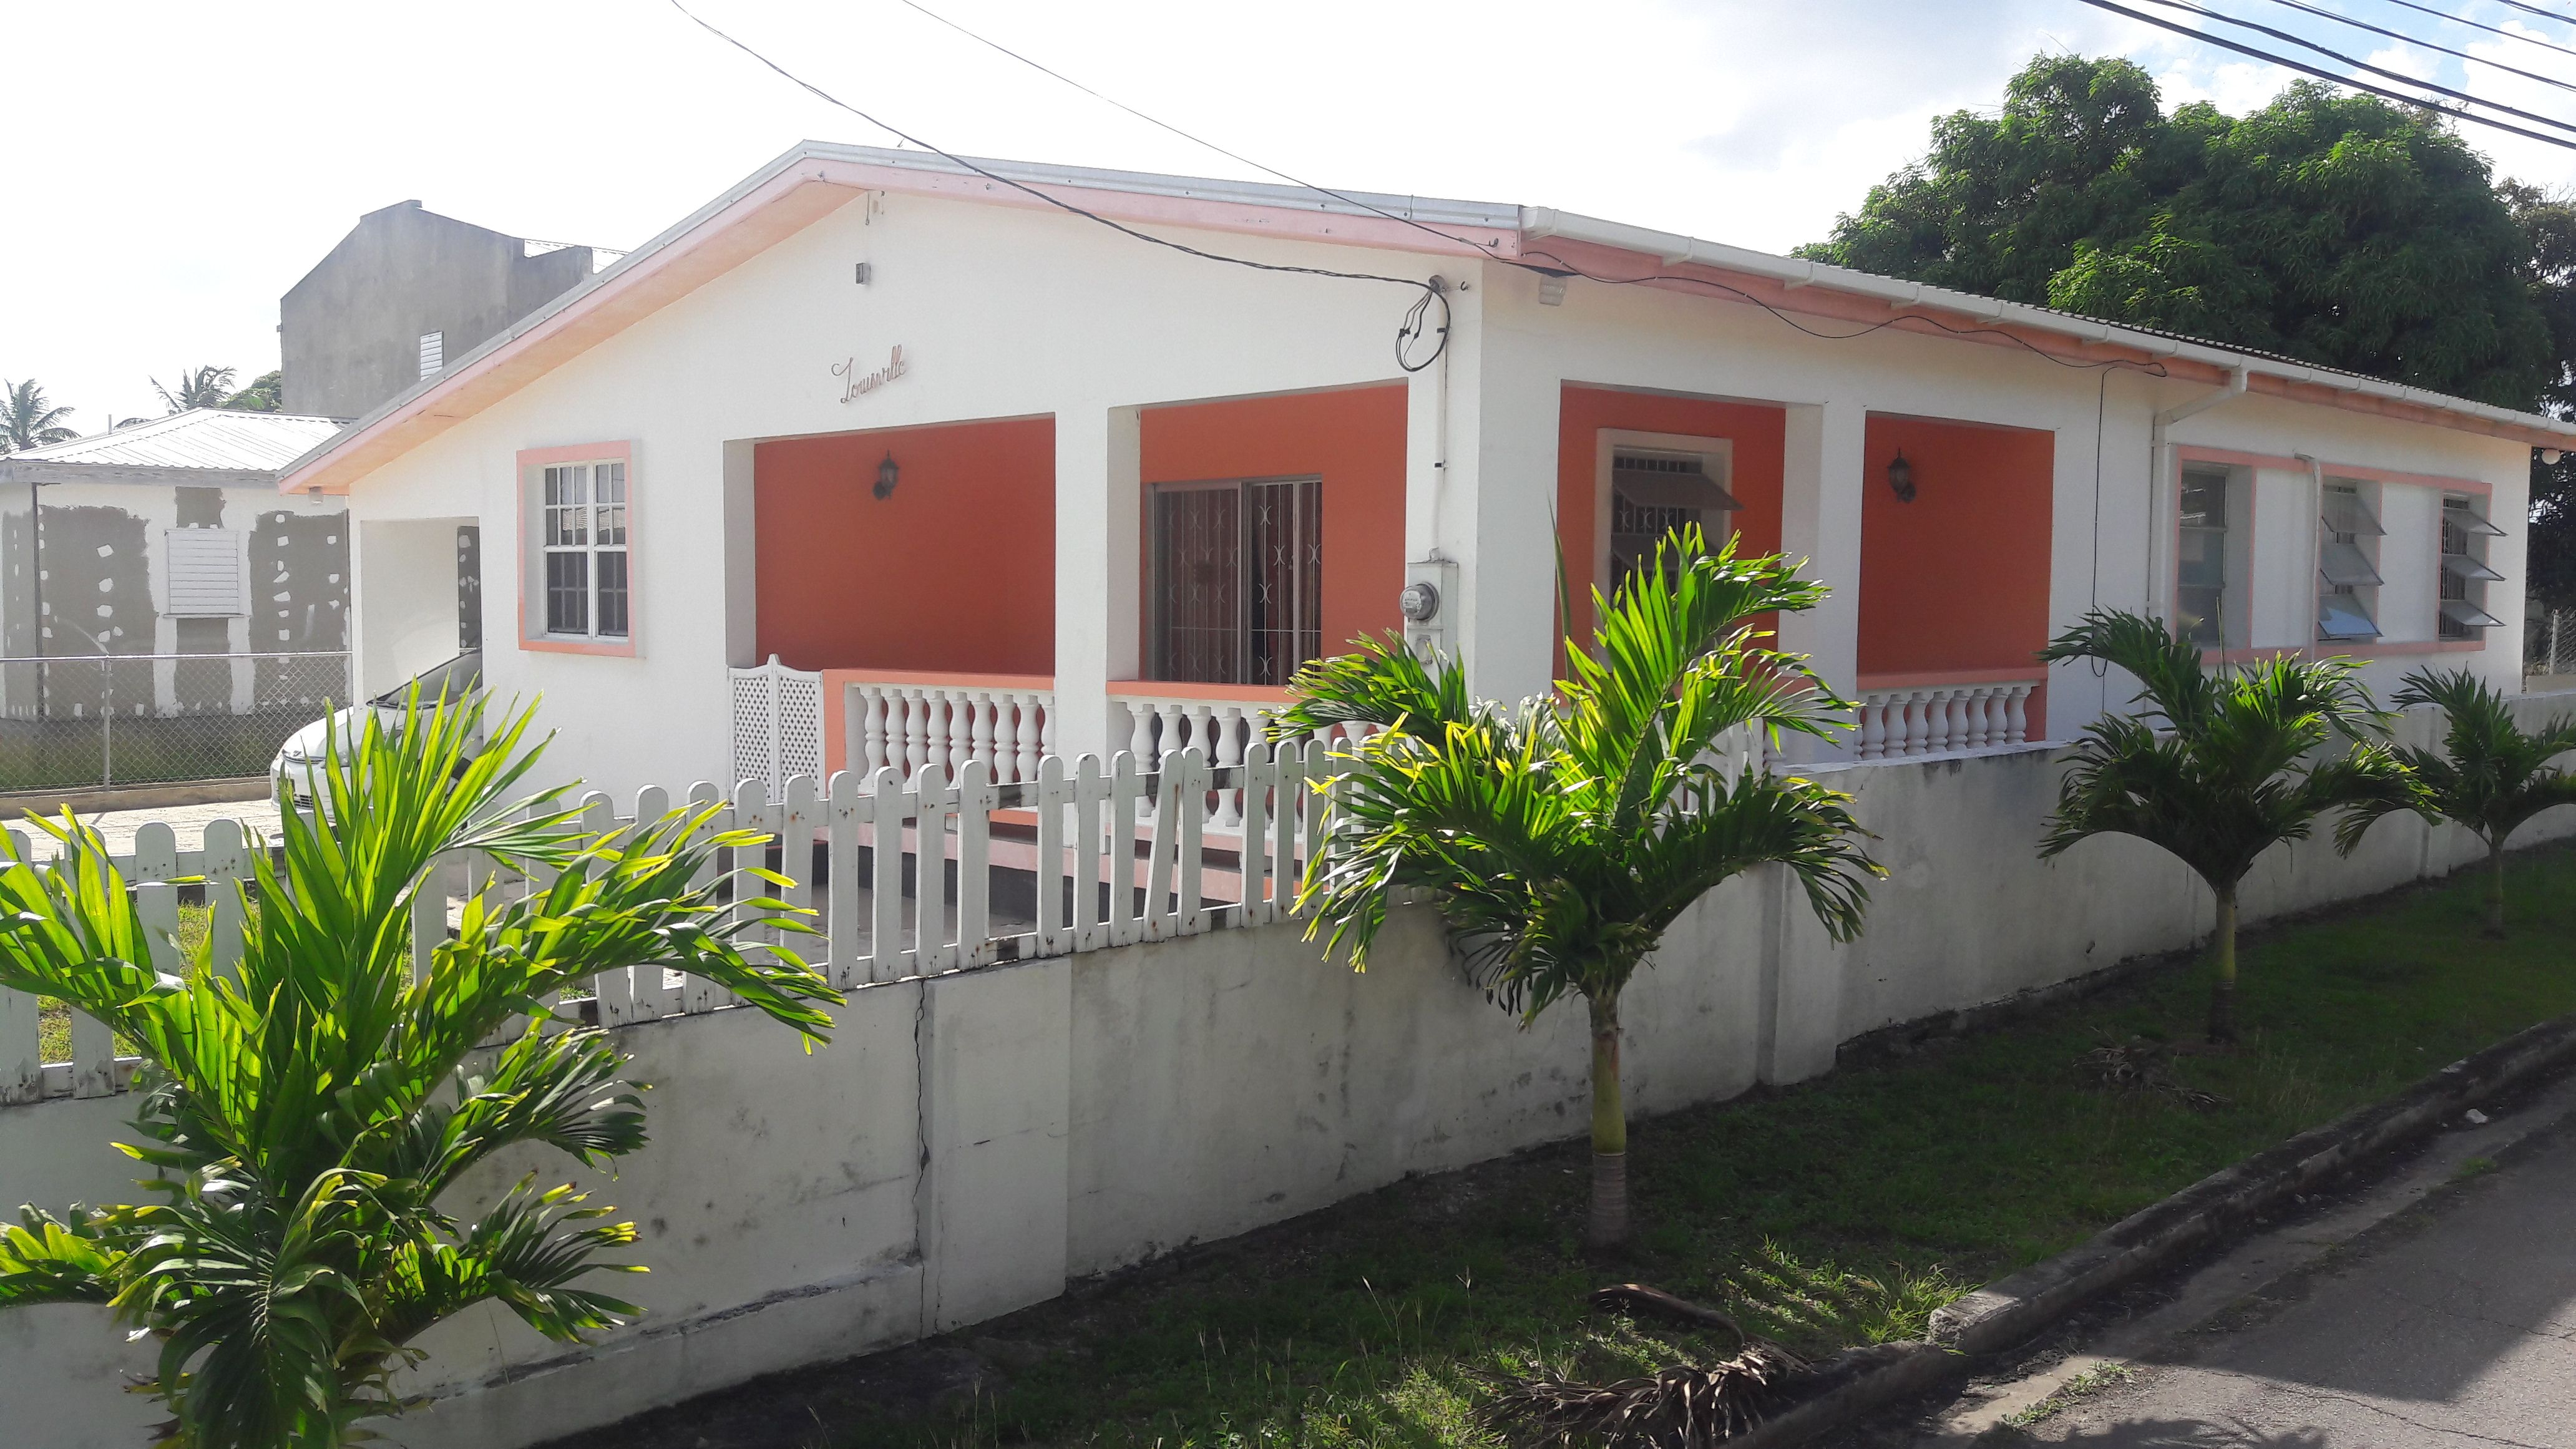 For Sale Grazettes St Michael Barbados 3 Bed 2 Bath House